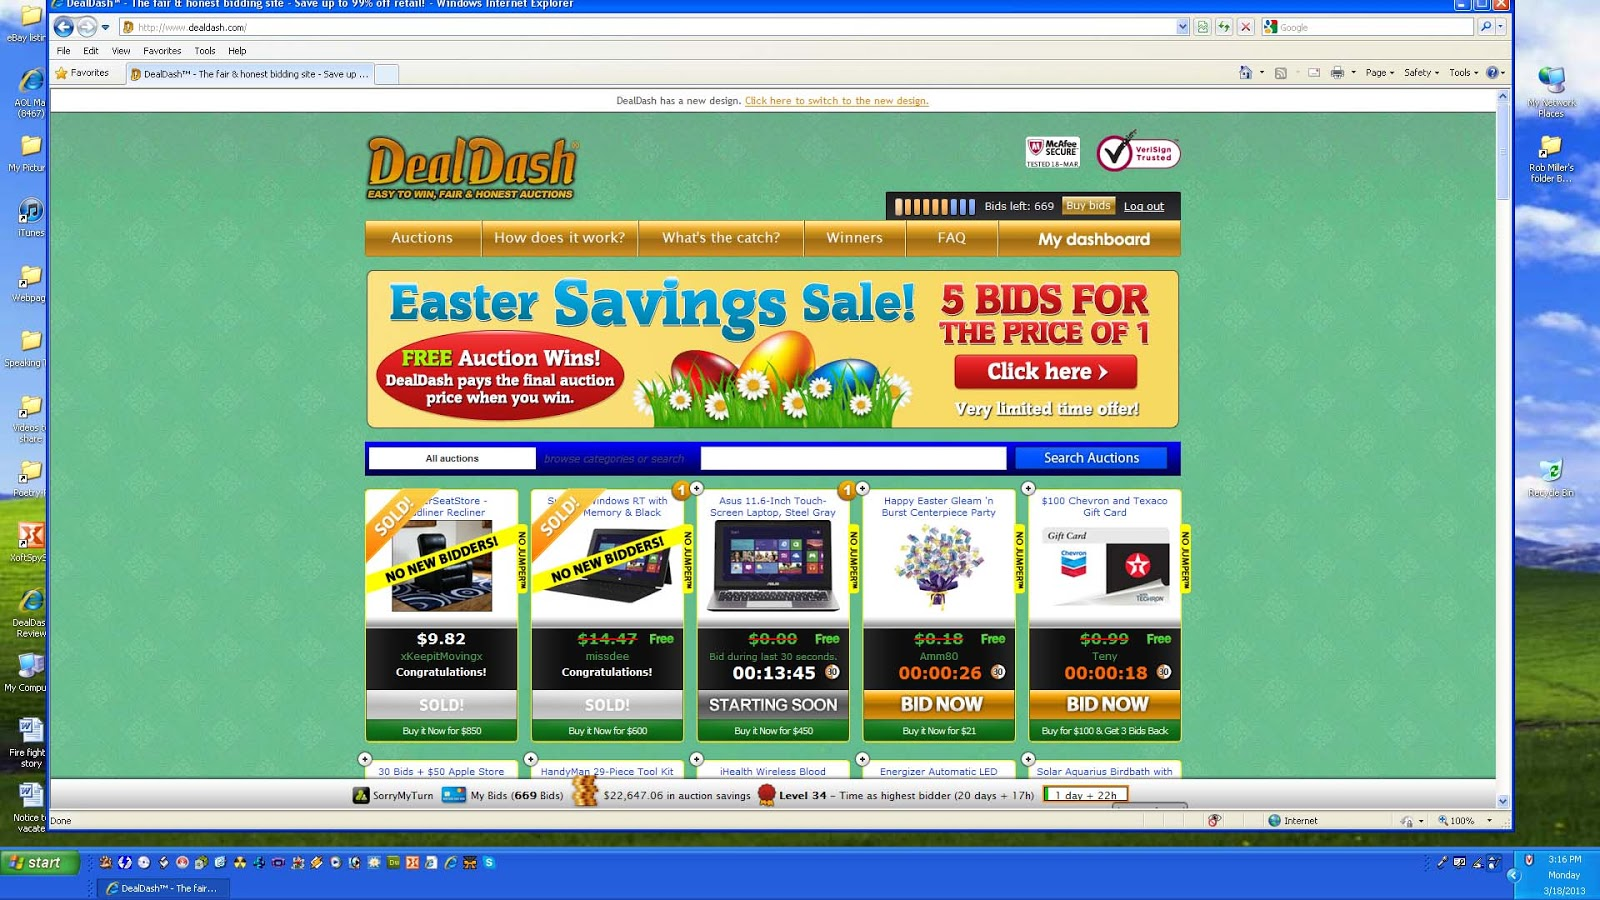 DealDash Shopping Best Special Events